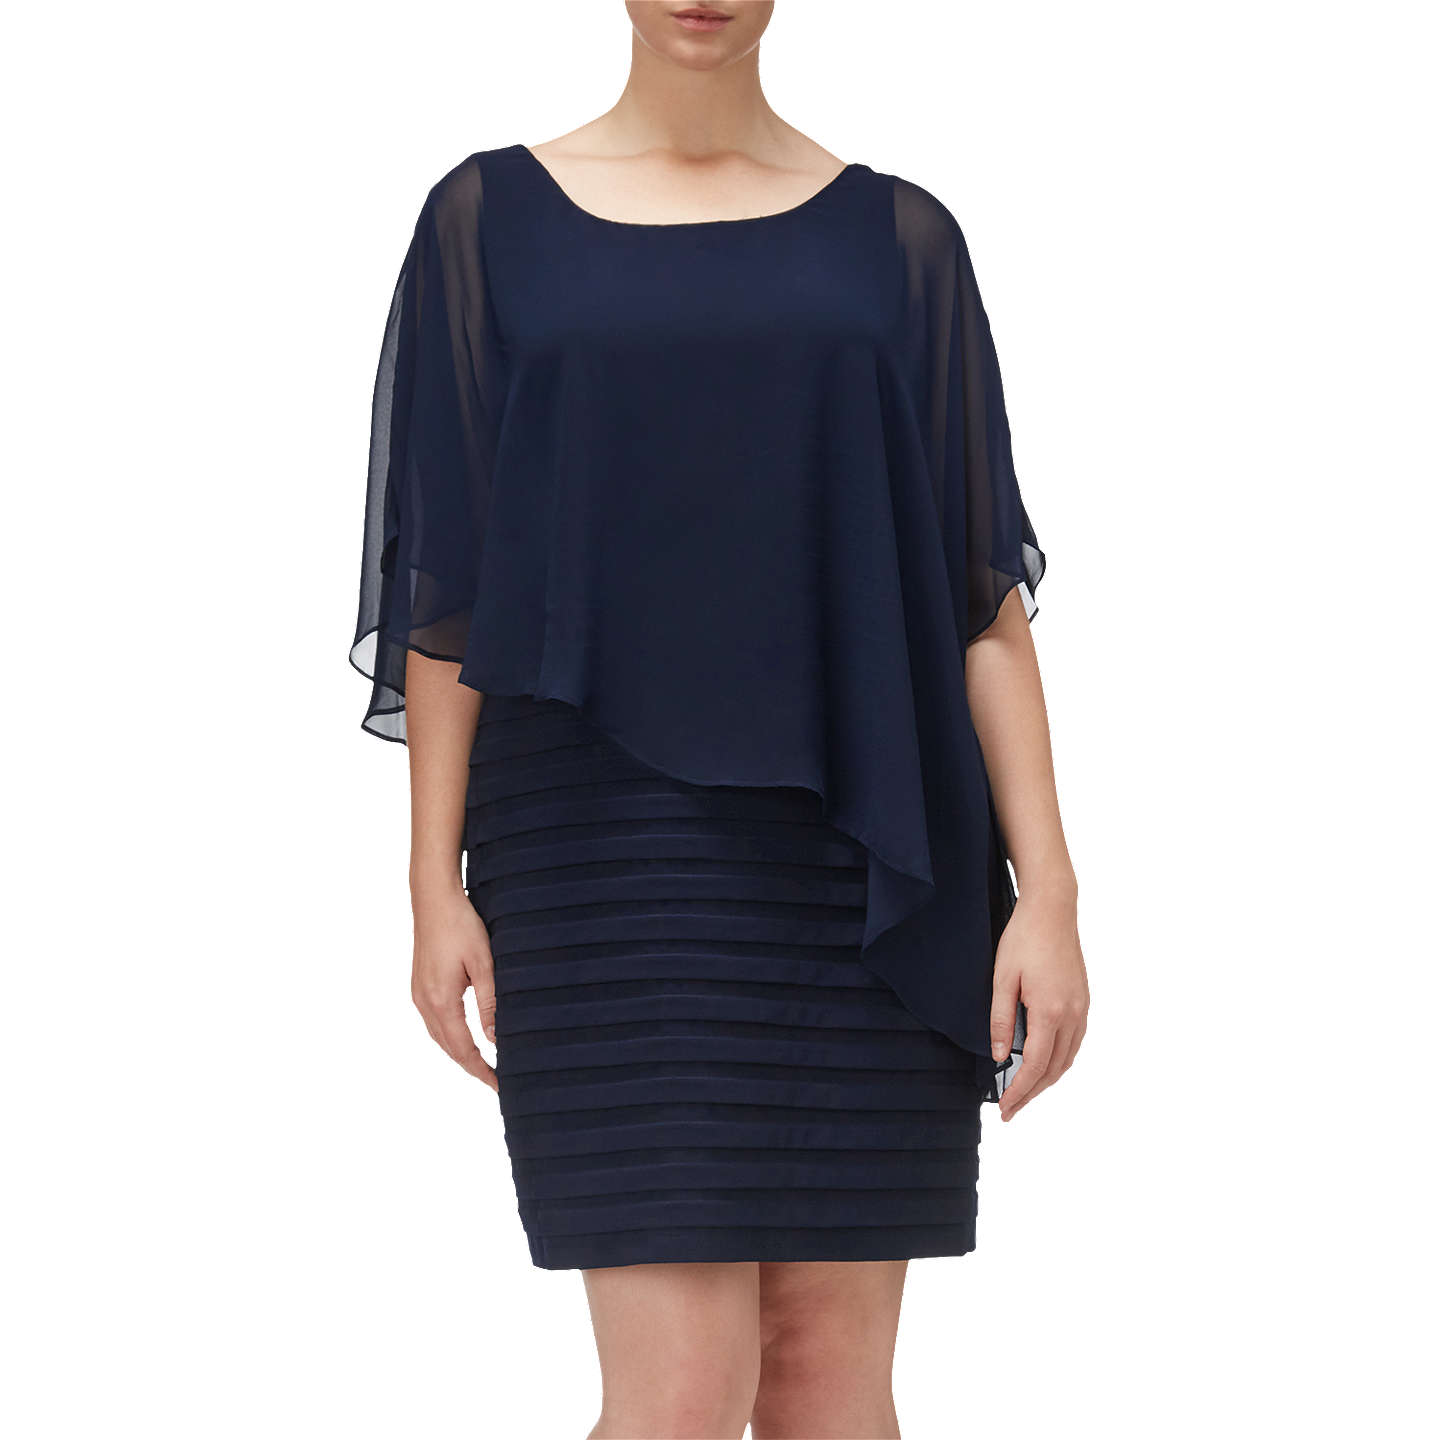 Adrianna Papell Plus Size Banded Dress With Chiffon Overlay Eclipse